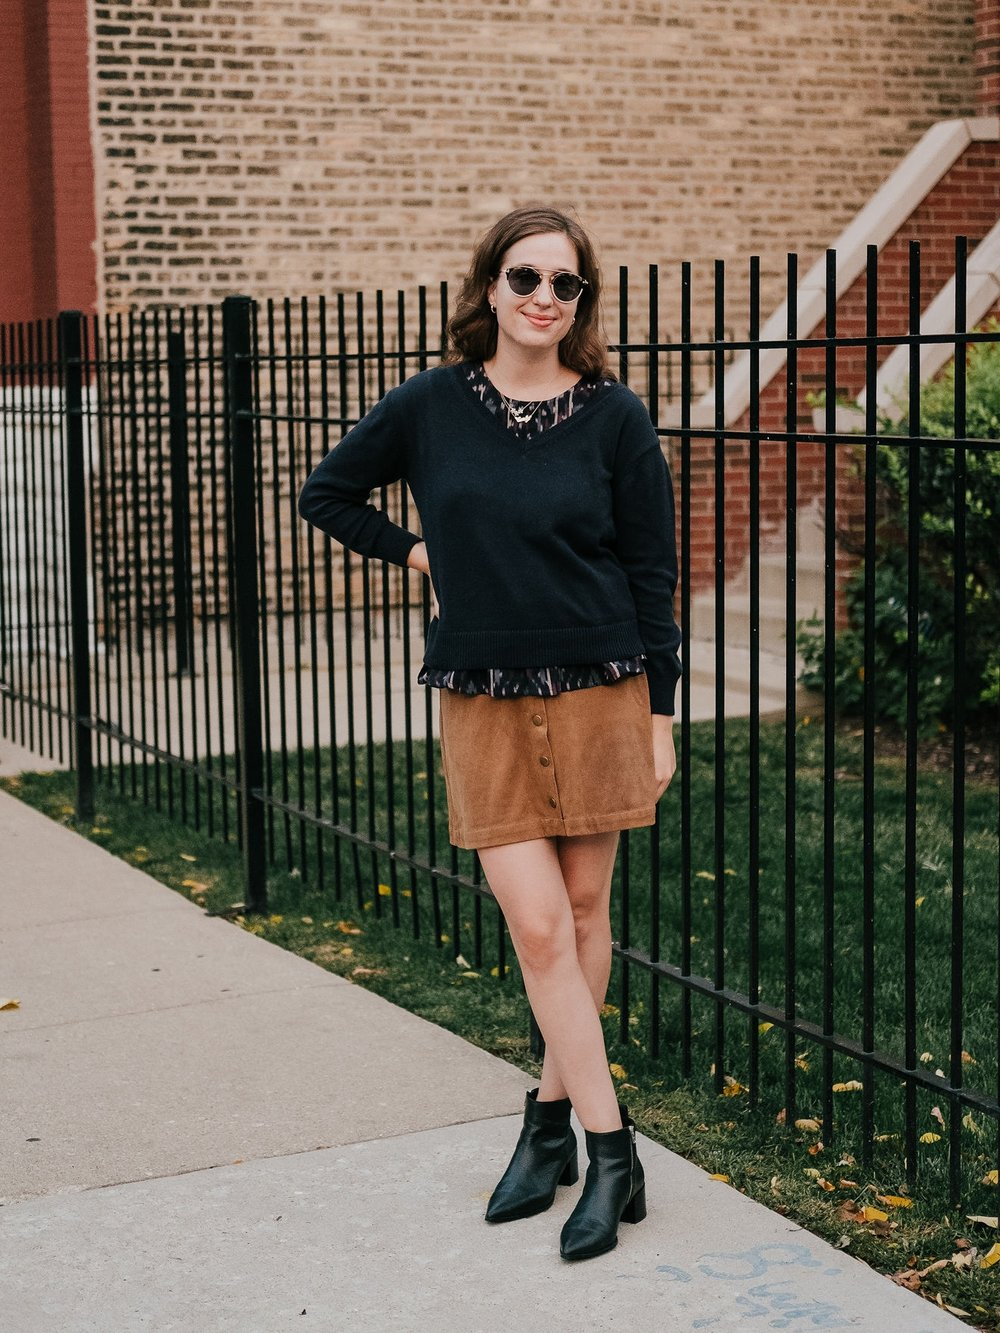 Layered outfit with a skirt for fall - A Week Of Ethical Outfits With Heart With Carly Gerber From Hippie + Heart on The Good Trade